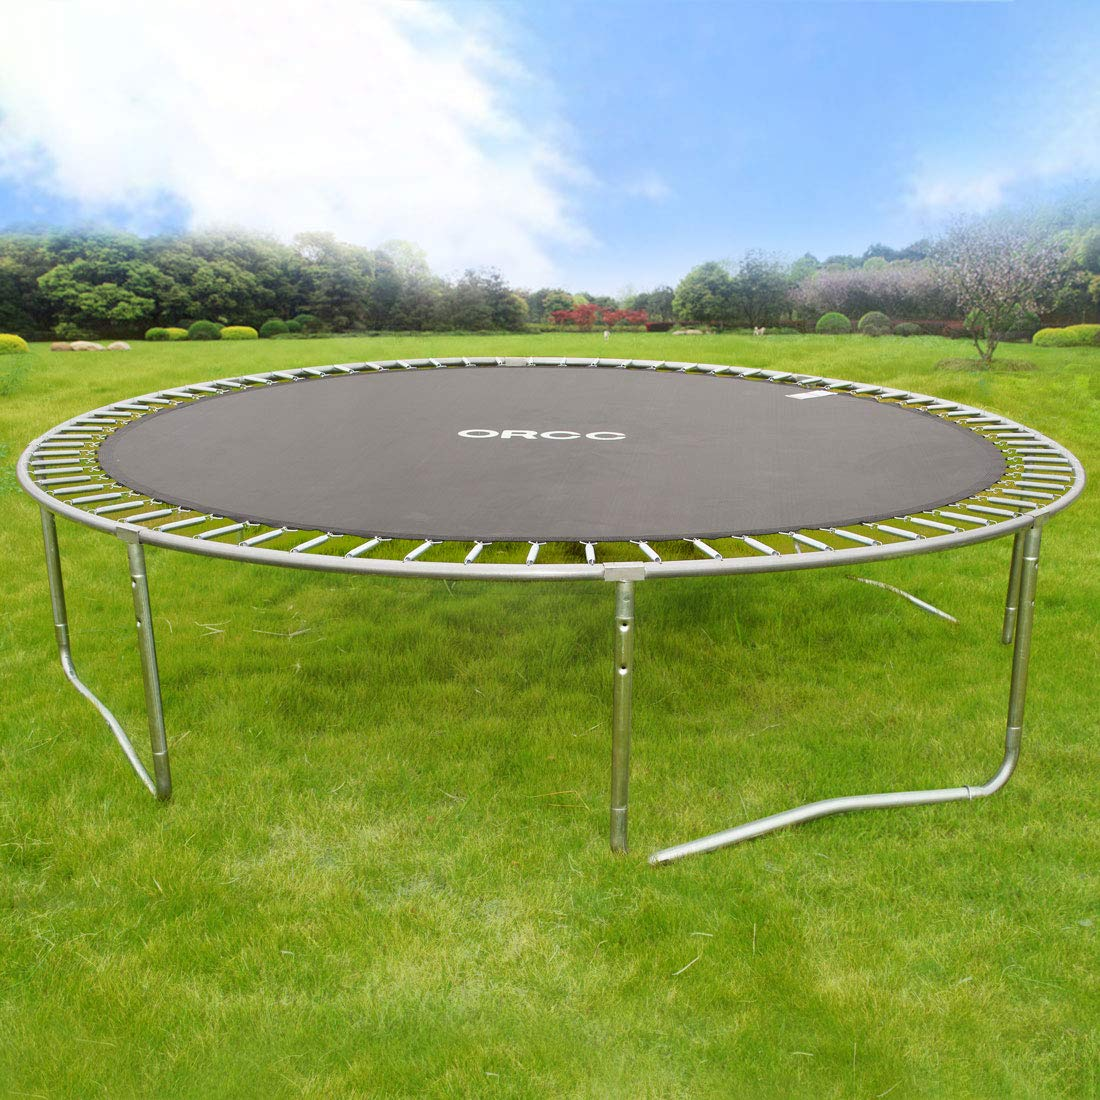 ORCC New Upgrade 15 14 12 10 FT Trampoline with Safety Enclosure Net Wind Stakes Rain Cover Ladder,Outdoor Trampoline with TUV Certificated,Best Gift for Kids by ORCC (Image #8)